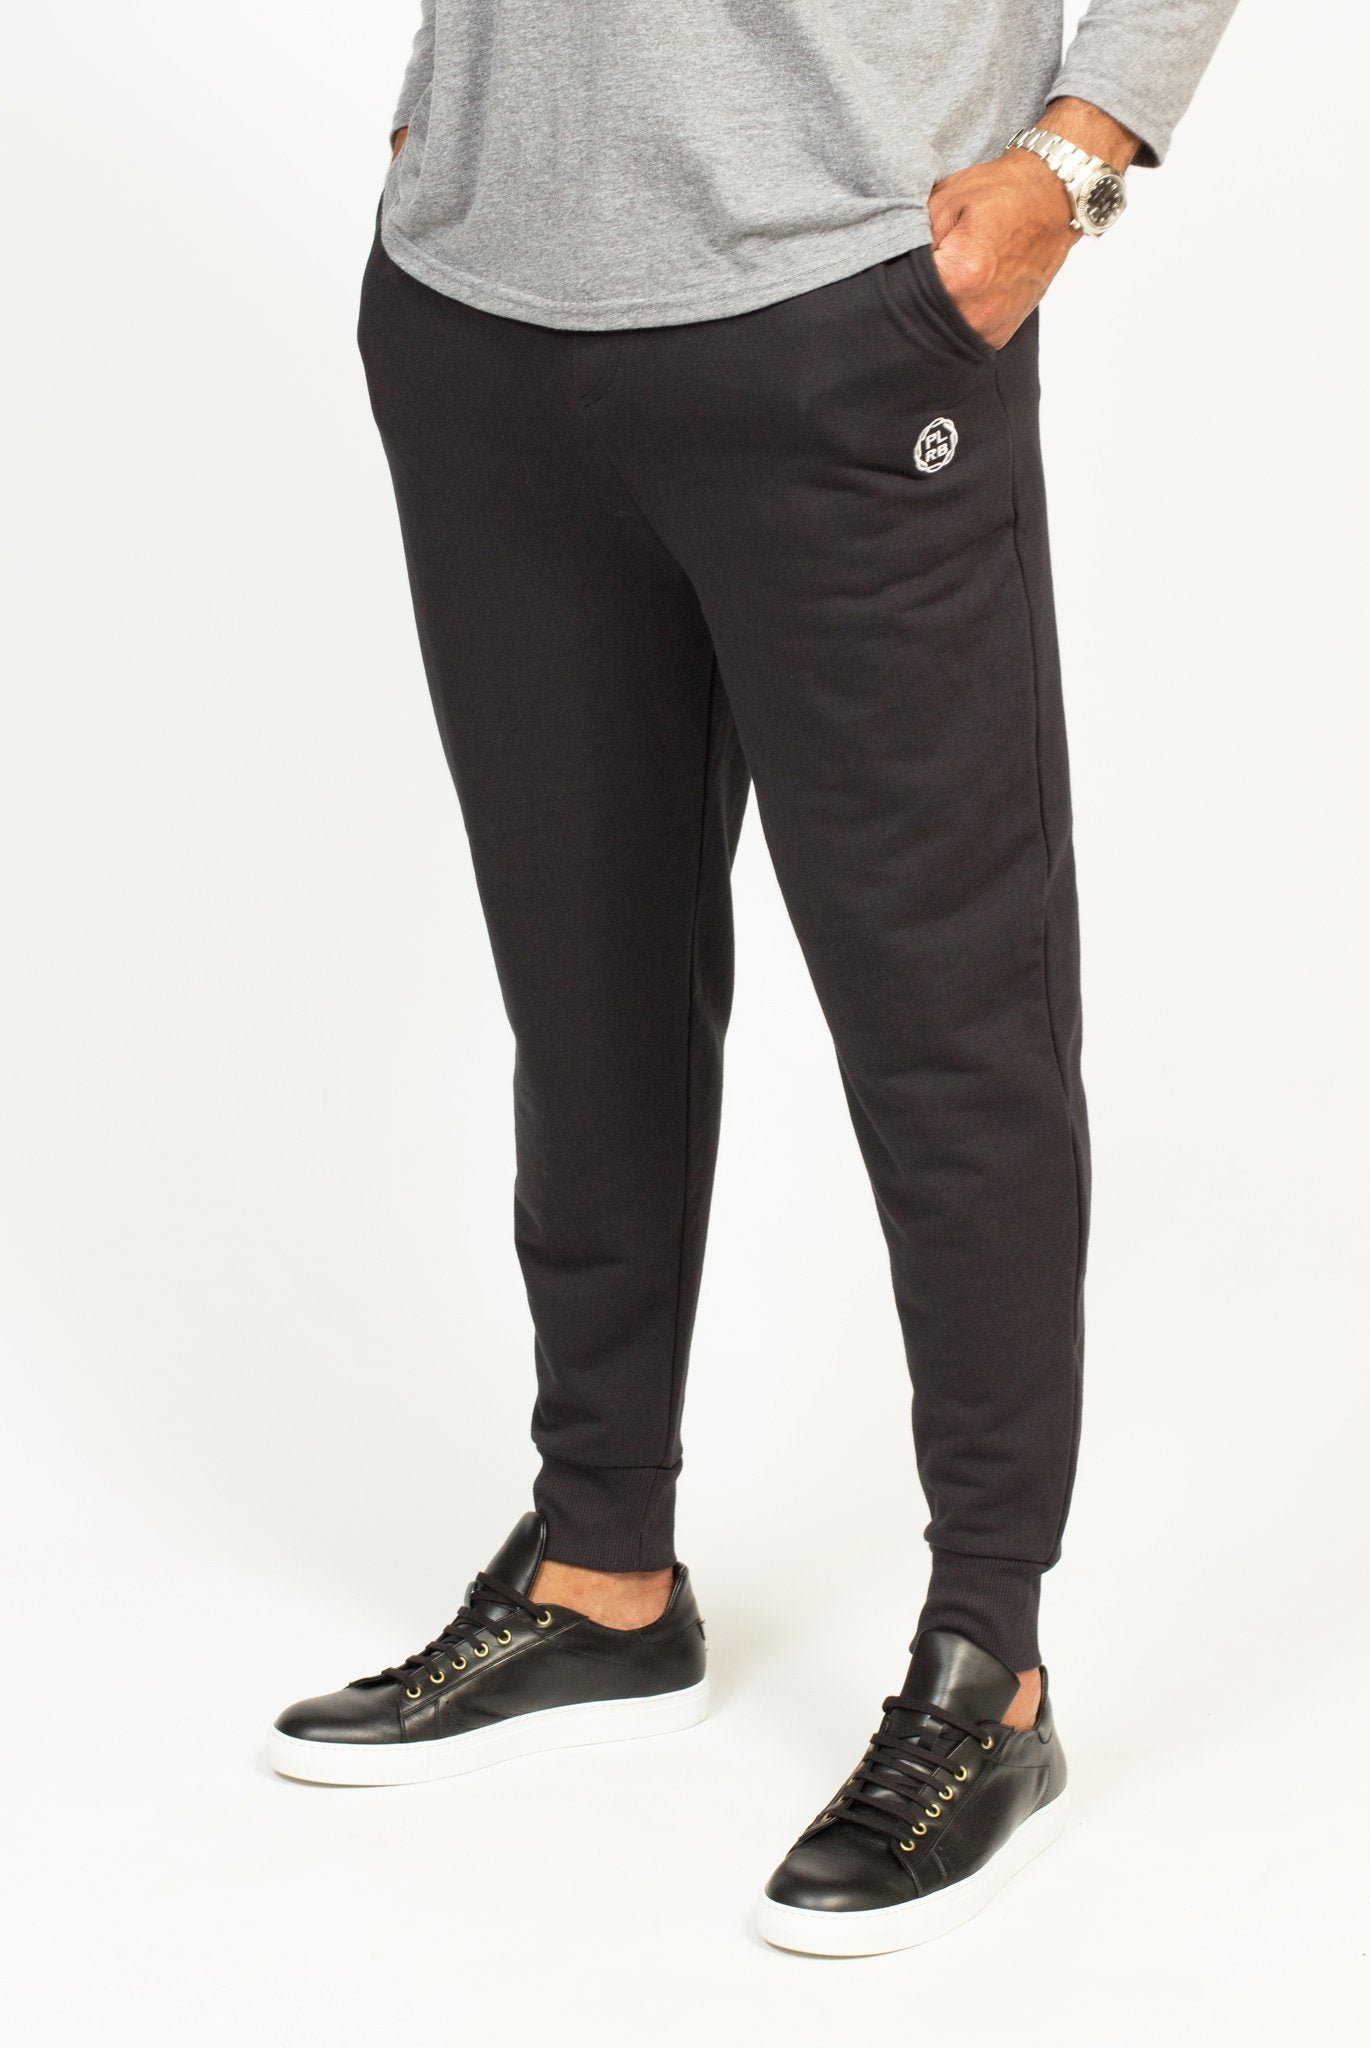 PLRB FLEX BLACK JOGGERS | Poor Little Rich Boy Clothing